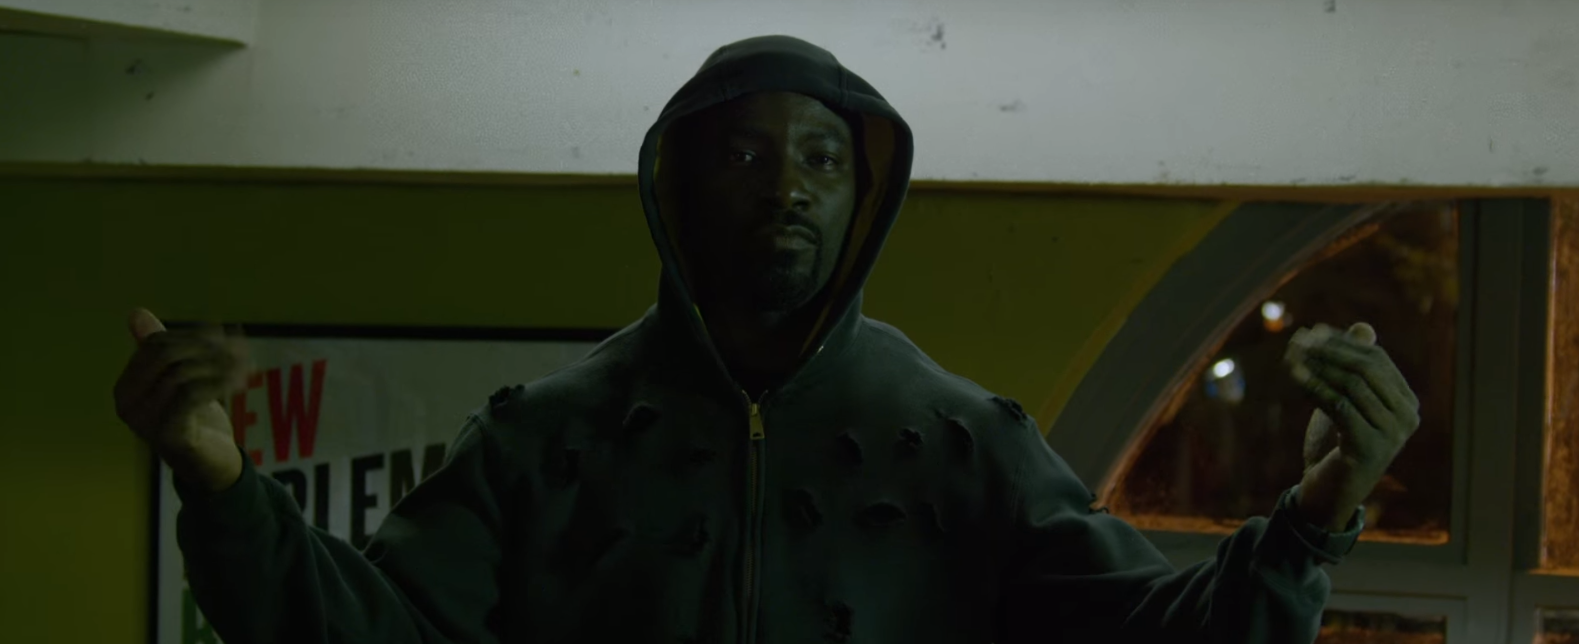 SDCC 2016: Official 'Luke Cage' teaser released by Netflix